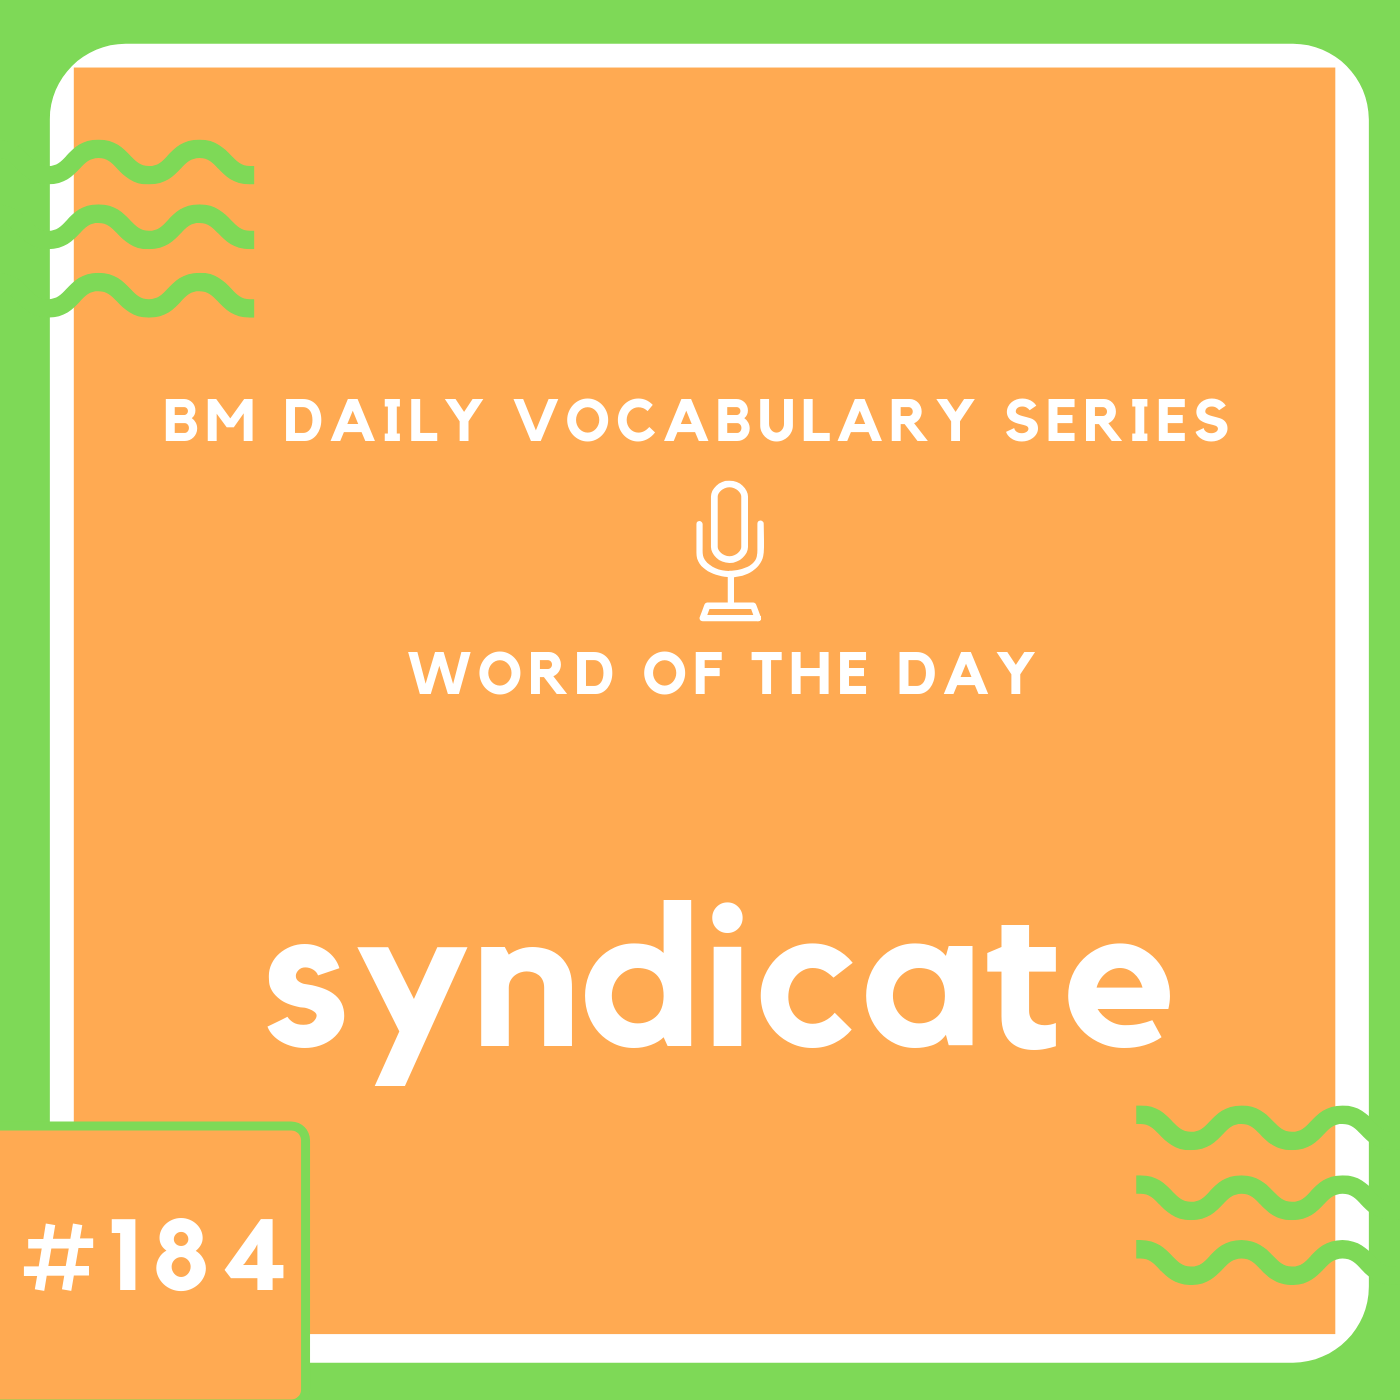 200 BM Daily Vocabulary #184 | syndicate